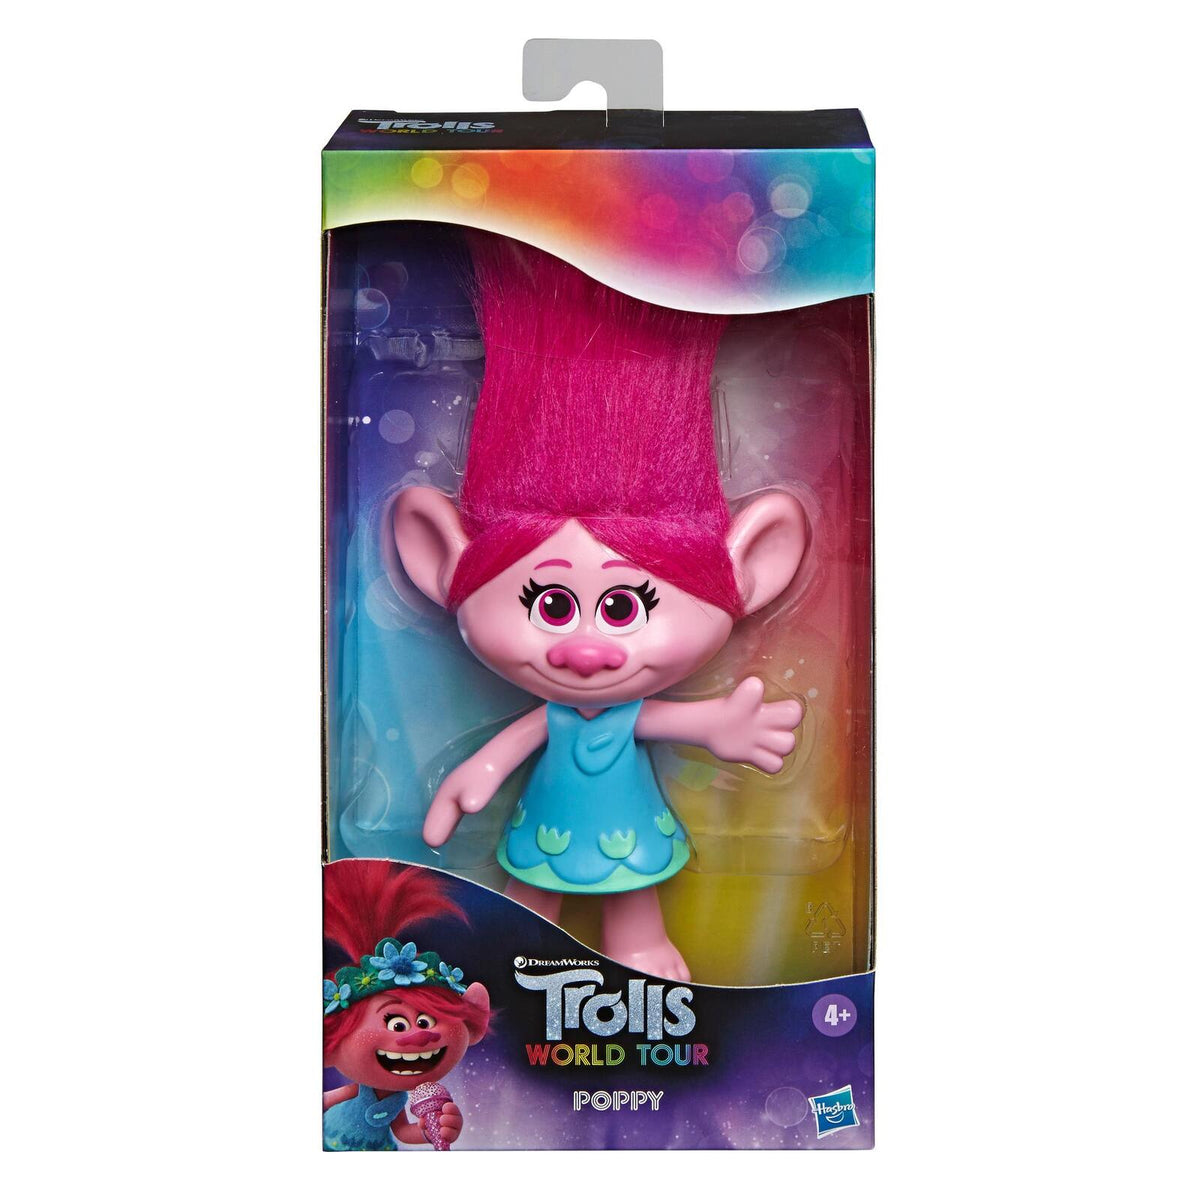 TROLLS DOLL WORLD TOUR - POPPY